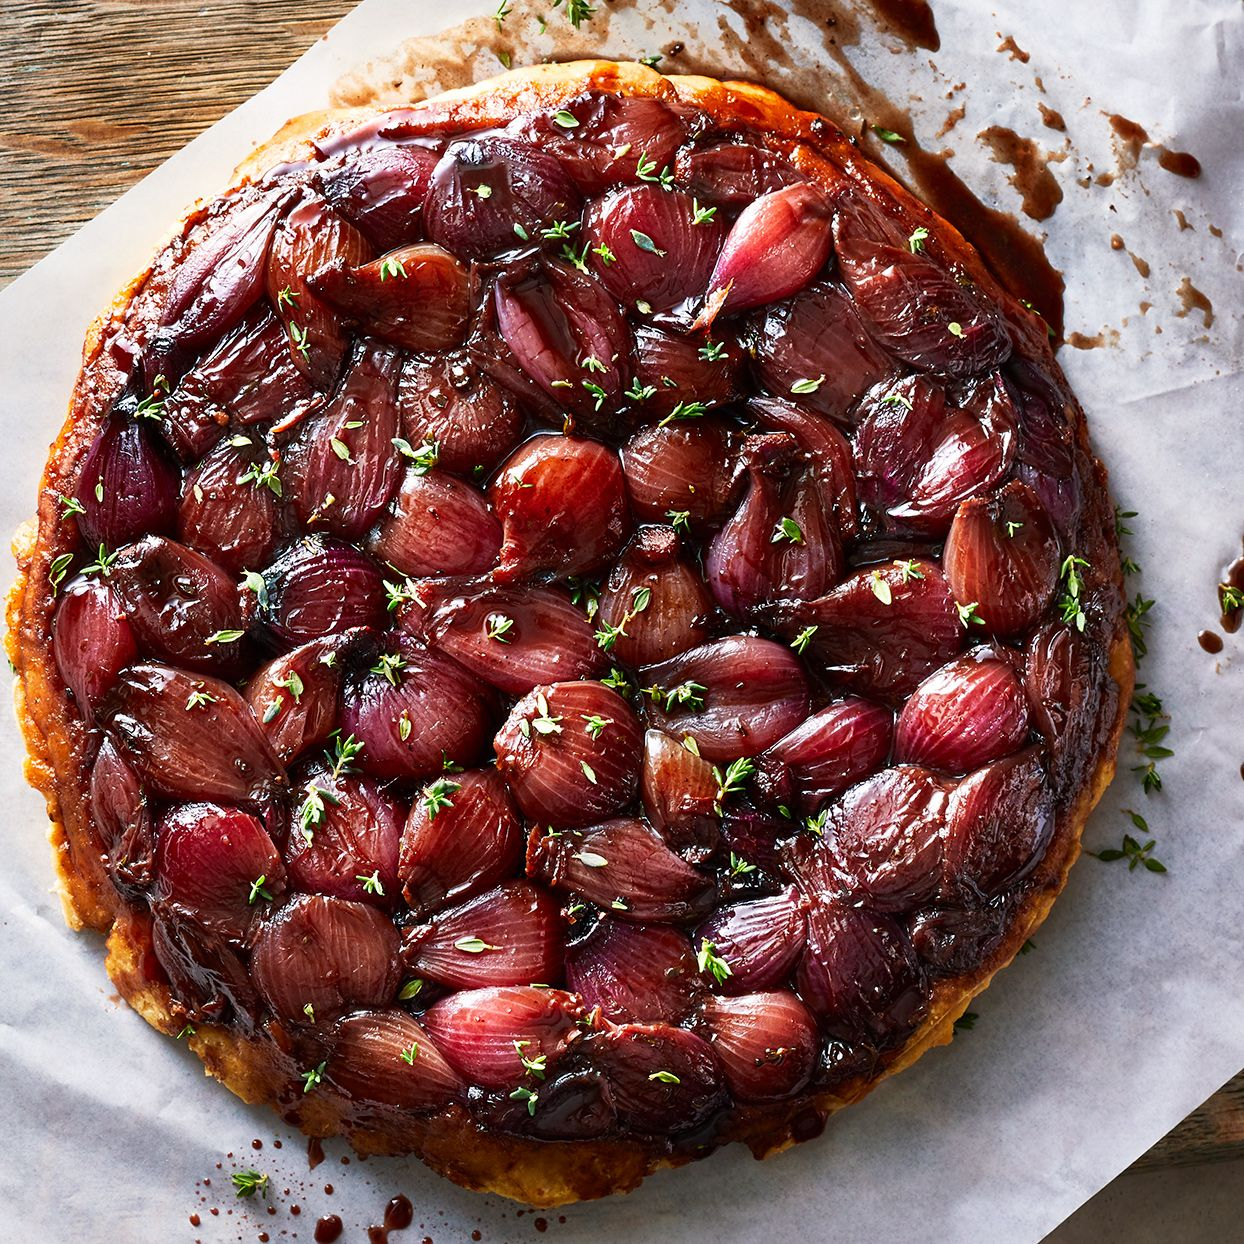 Red Wine Balsamic Pearl Onion Tarte Tatin In 2020 Balsamic Pearls Hearty Dinner Tarte Tatin